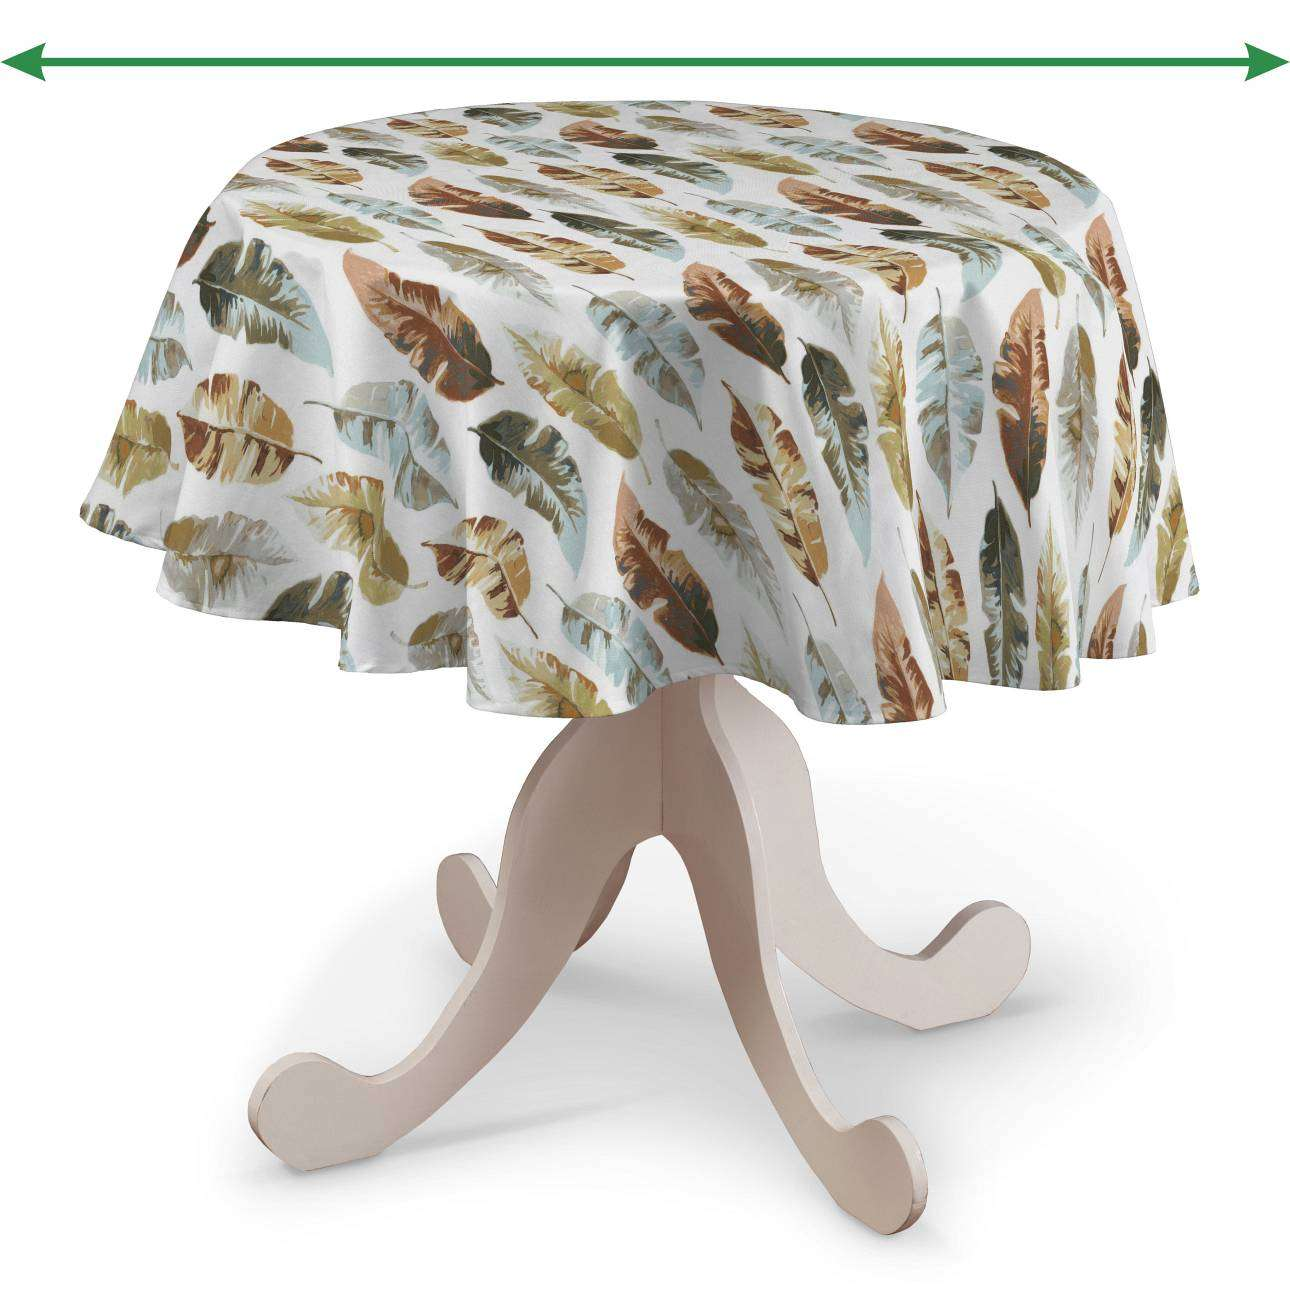 Round tablecloth in collection Tropical Island, fabric: 141-43